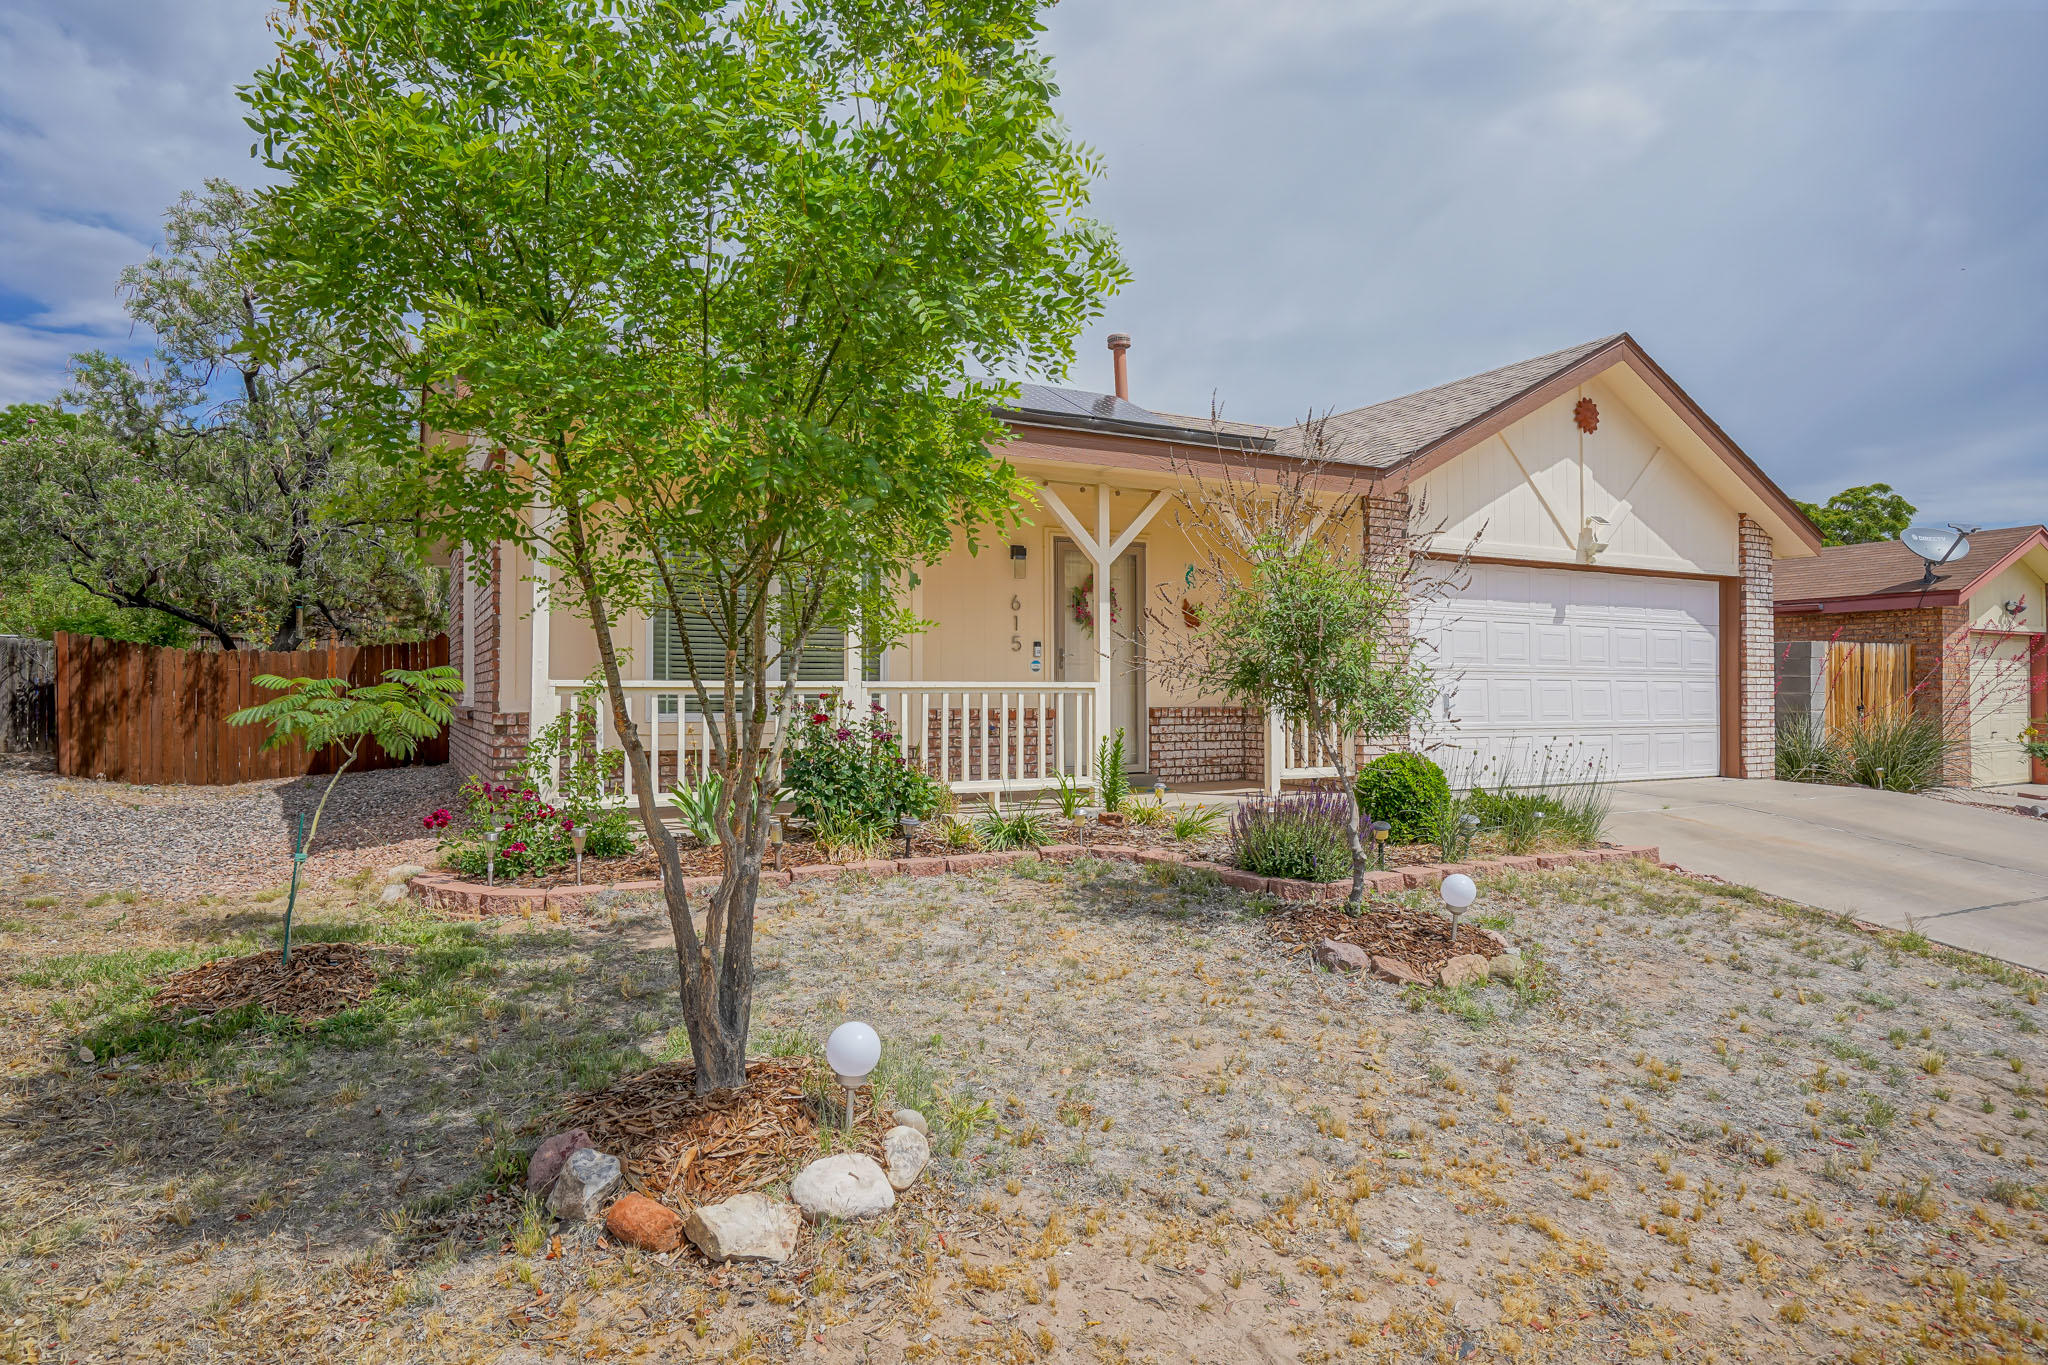 MULTIPLE OFFERS ARE IN. Adorable updated brick two-bedroom home! Modern flare with updated Light fixtures, vaulted ceilings, and tons of Charm! Enjoy entertaining with the open floor plan! The updated kitchen has a gas range, tile backsplash, and newer stainless steel appliances. The master bedroom offers solid bamboo floors and a must-see spa-like master bathroom. The tiered backyard features trees and xeriscaping for easy upkeep and maintenance. Updates include new paint inside and out, refrigerated air & tankless water heater. One owner home! This home also has solar Panels! The Solar panels are owned, and the electric bill is only $8 a month! This cutie won't last long! Schedule a private showing today!